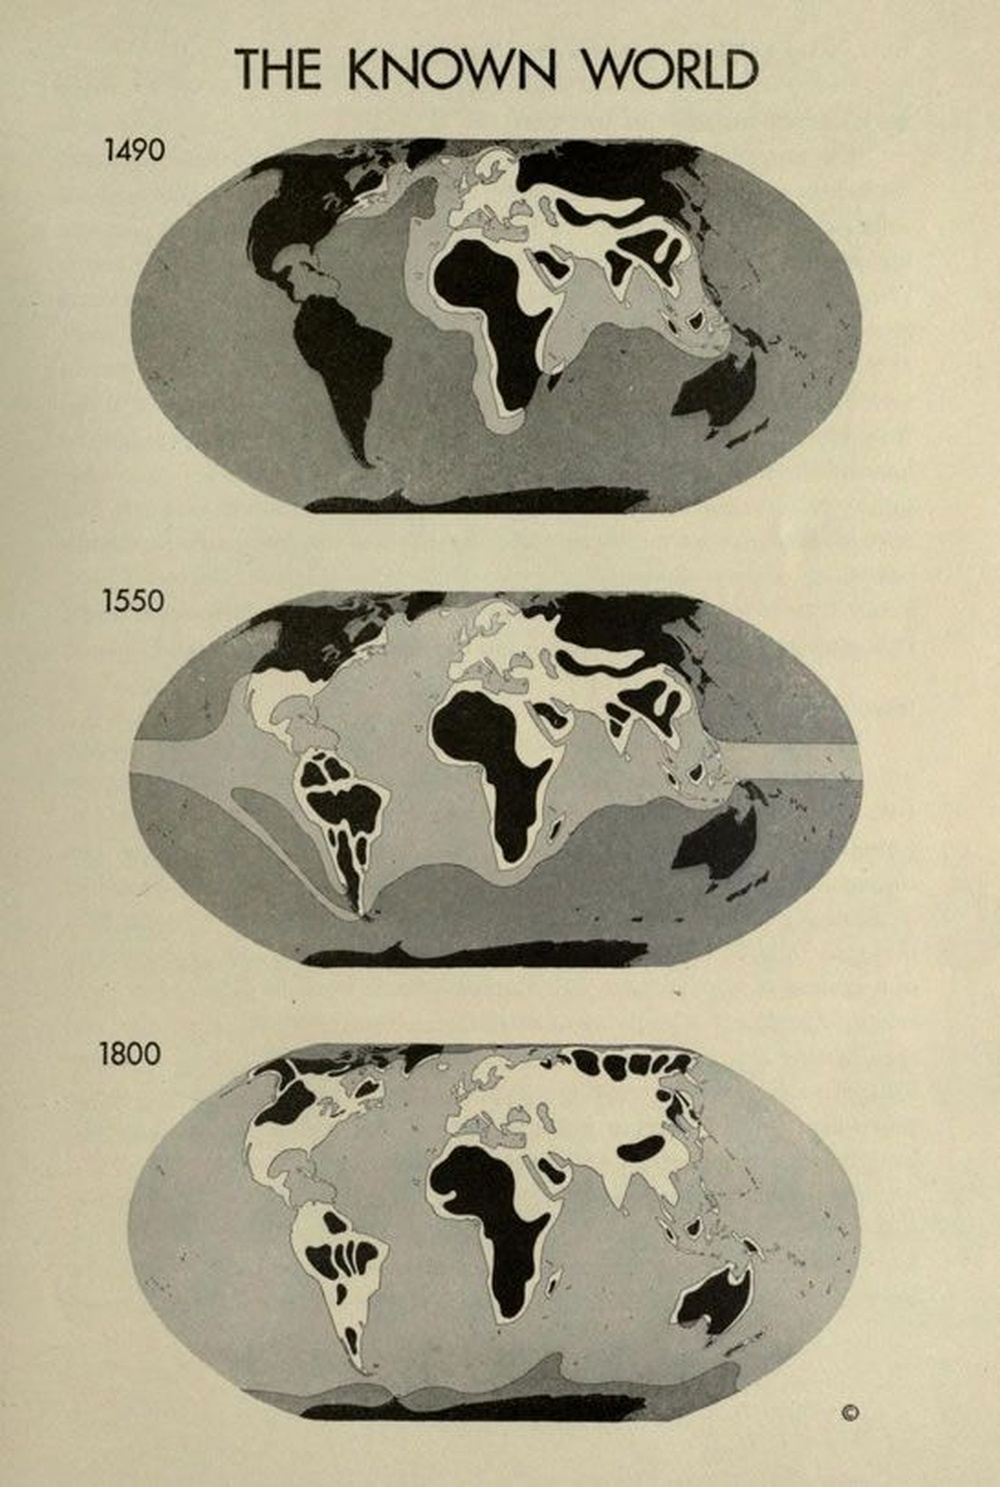 The Known World in 1490, 1550 & 1800